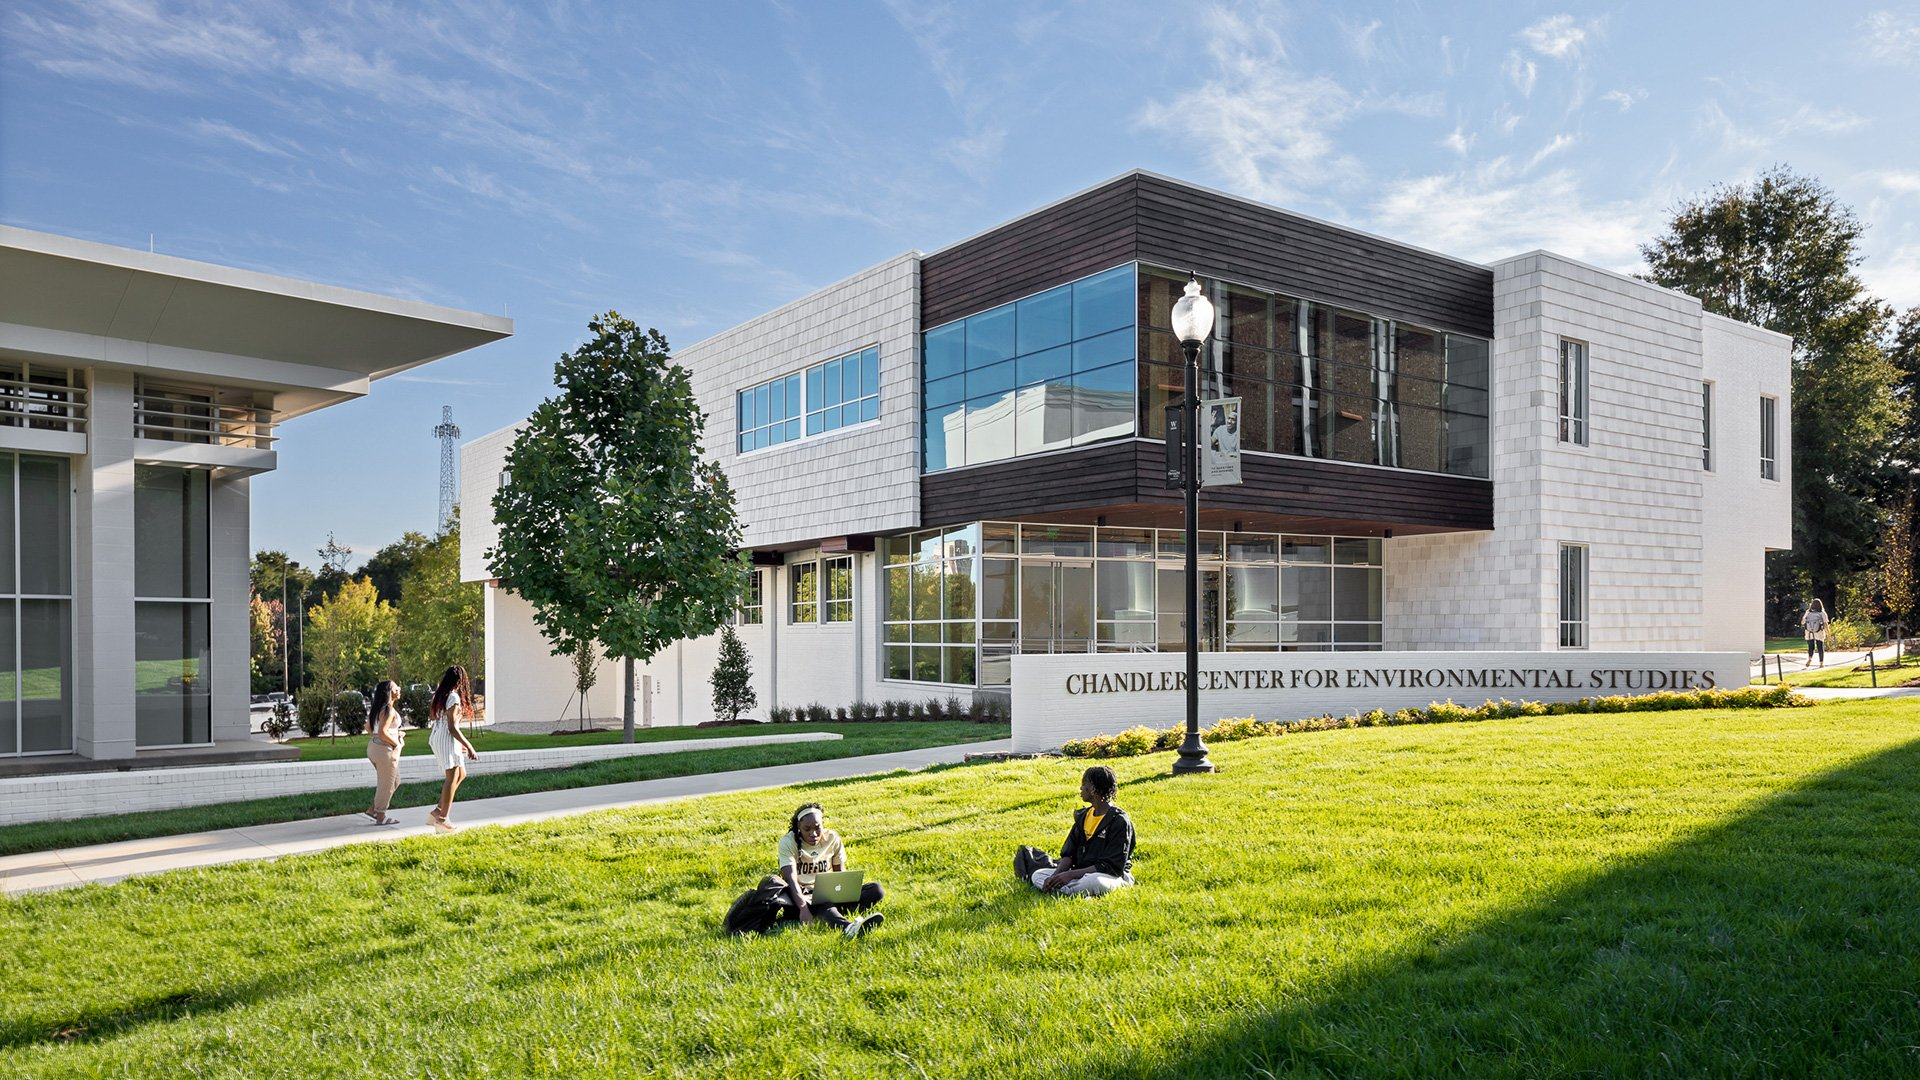 Chandler Environmental Center Dedicated to Longtime Wofford College Supporters